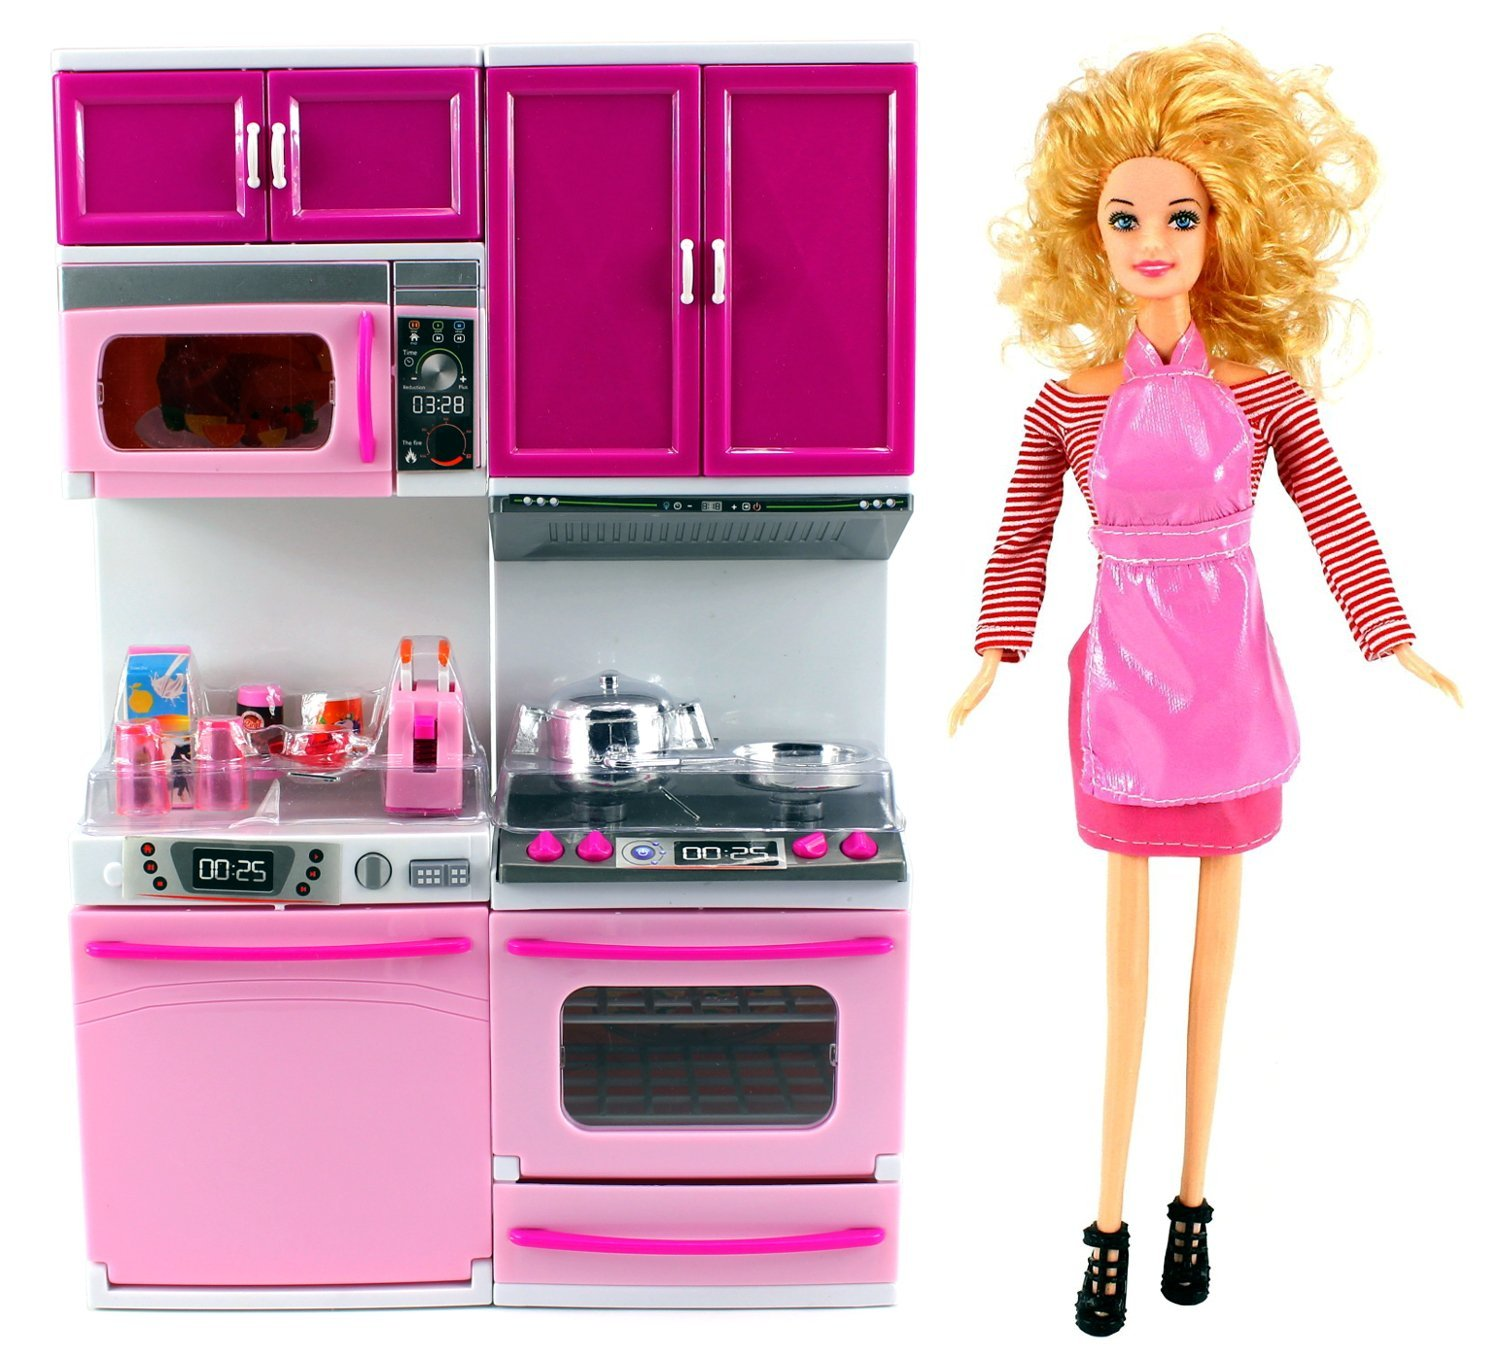 "My Happy Kitchen Dishwasher & Stove Battery Operated Toy Doll Kitchen Playset w/ Toy Doll, Lights, Sounds, Perfect for Use with 11-12"" Tall Dolls"